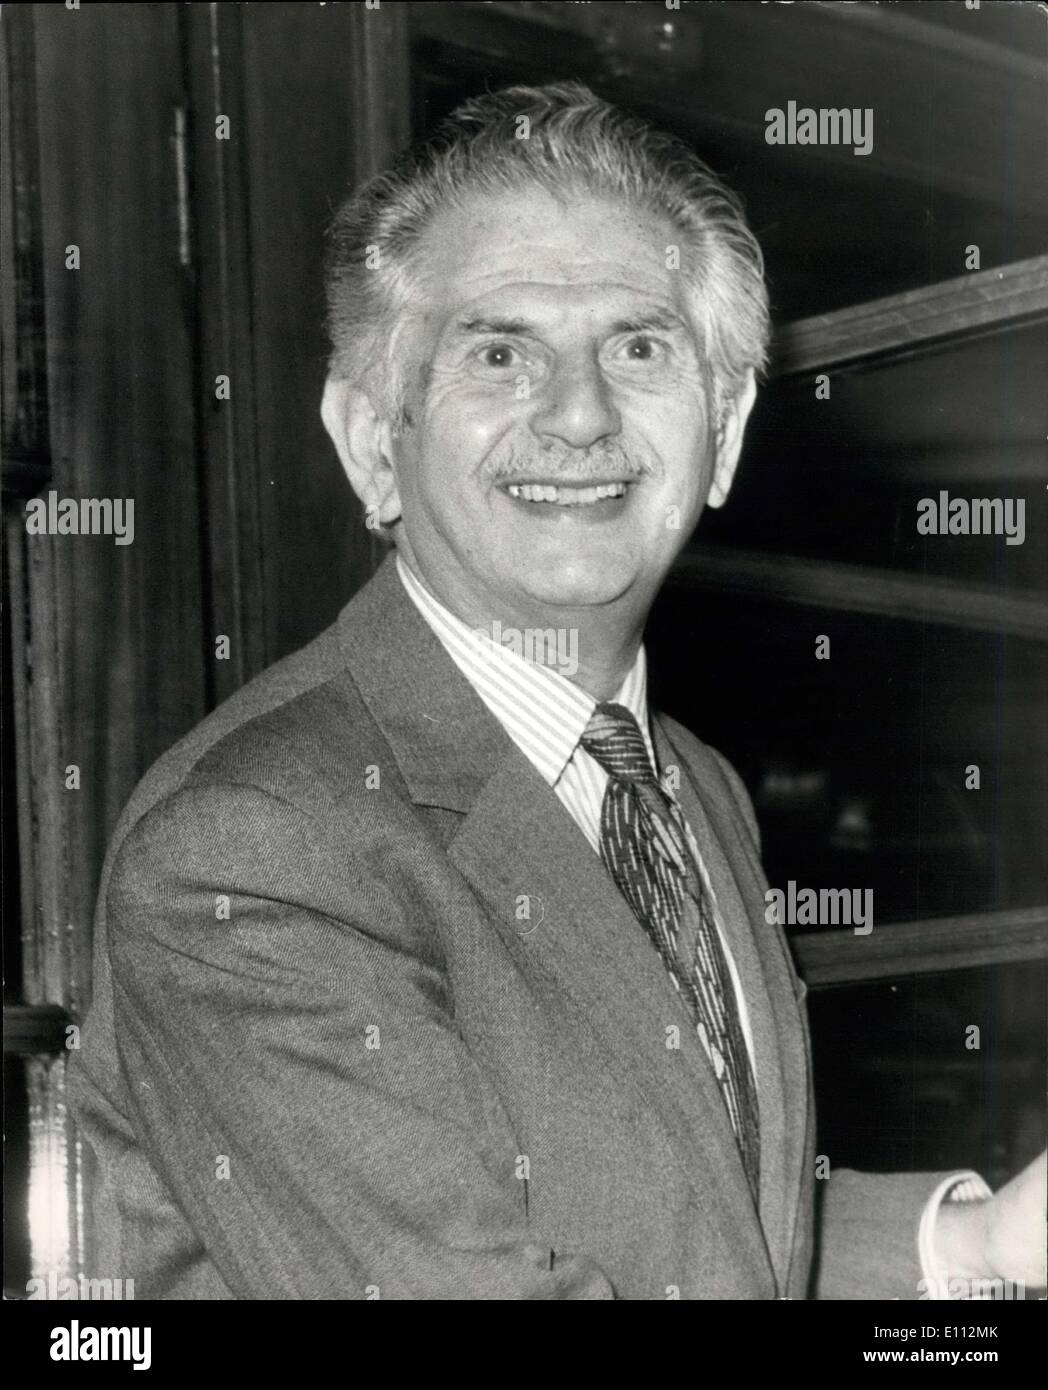 May 12, 1975 - Sate Industry Leaders Meeting: Leaders of nationalized industries were this afternoon holding a meeting at the British Steel Corporation. Prior to the meeting they had launch at the Great Western Hotel, Paddington. Photo shows Sir Monty Finniston, head of the British Steel Corporation,arriving for today's lunch. - Stock Image